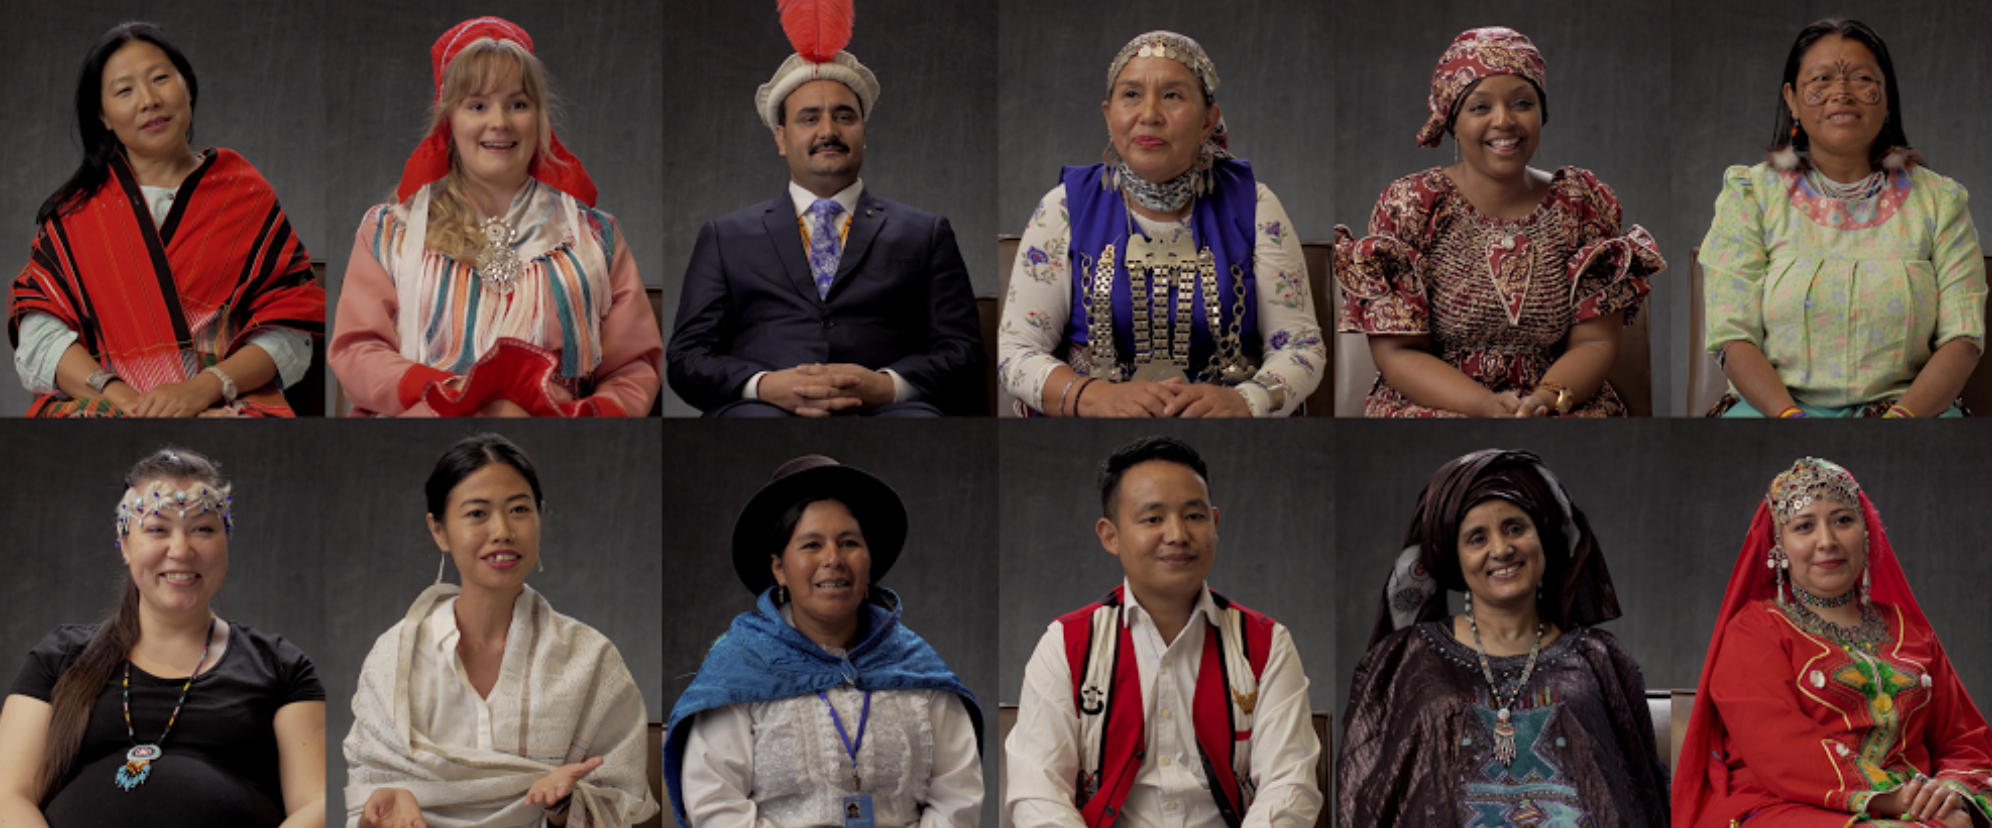 Google Earth has released a new platform called Celebrating Indigenous Languages. Image by Google Earth.